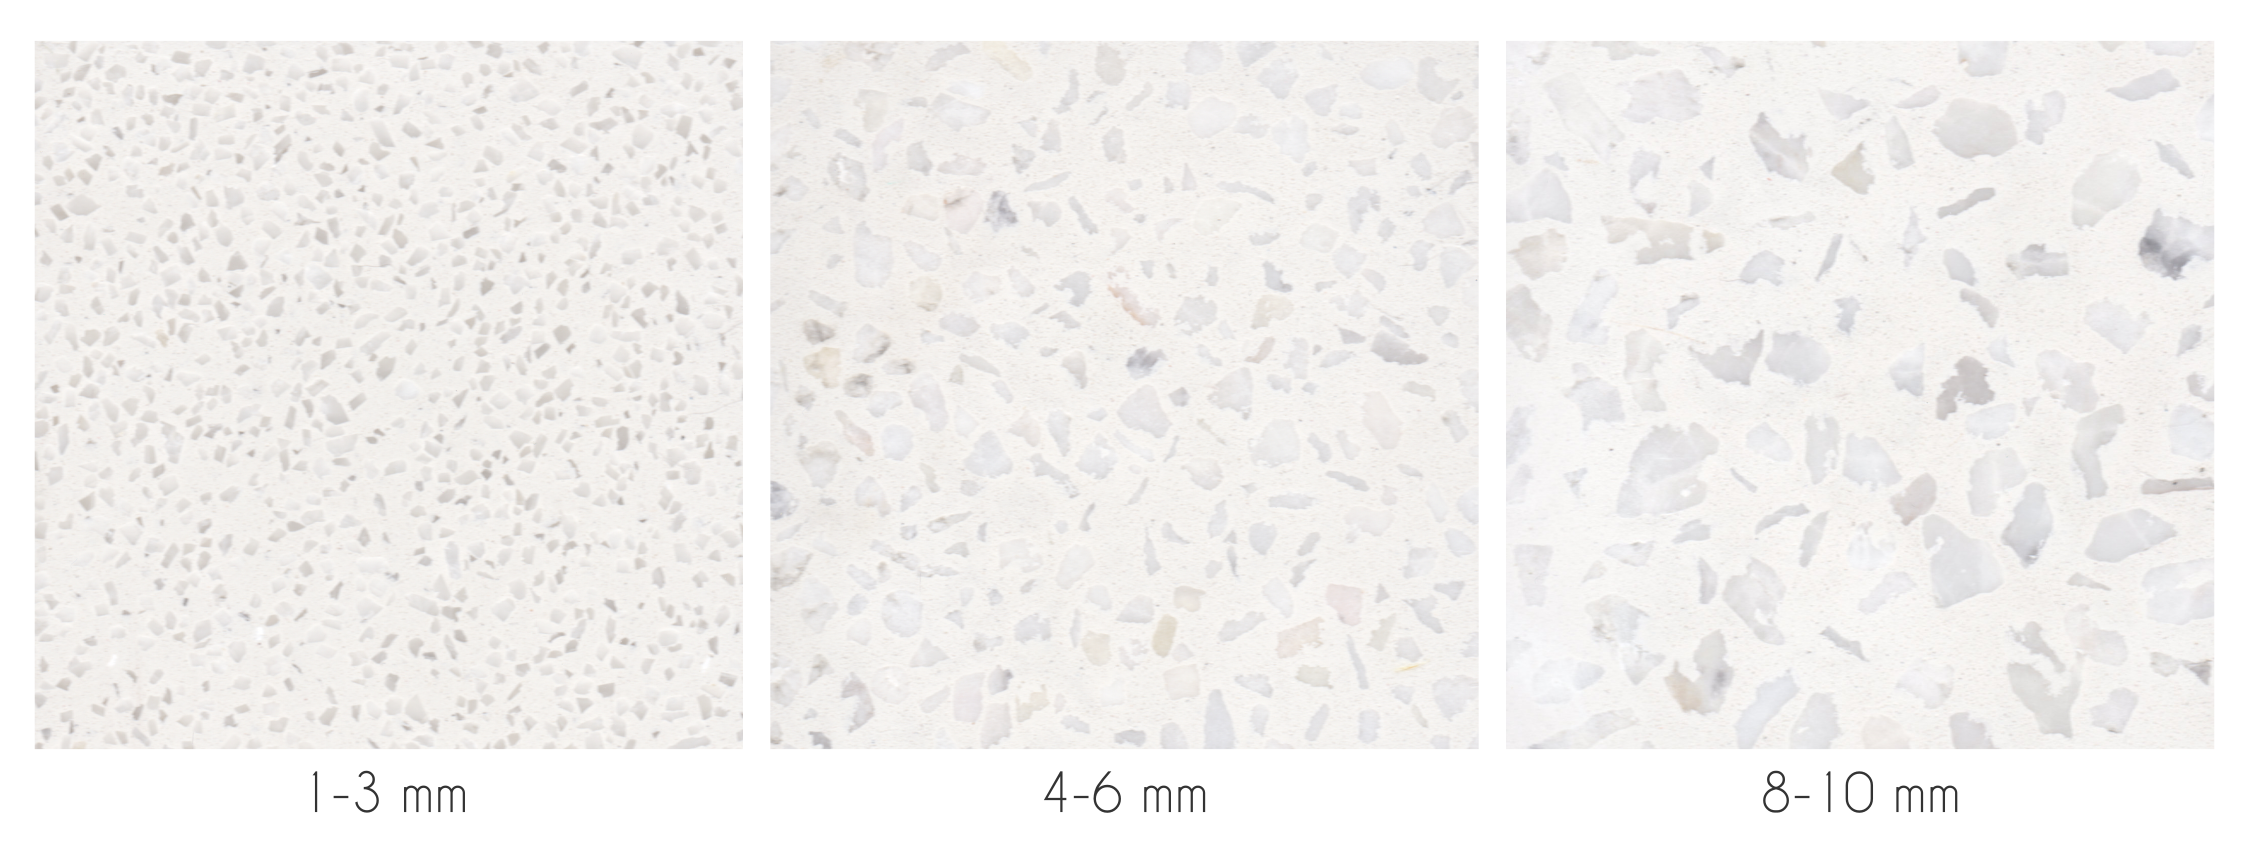 photos showing the different size terrazzo chips available